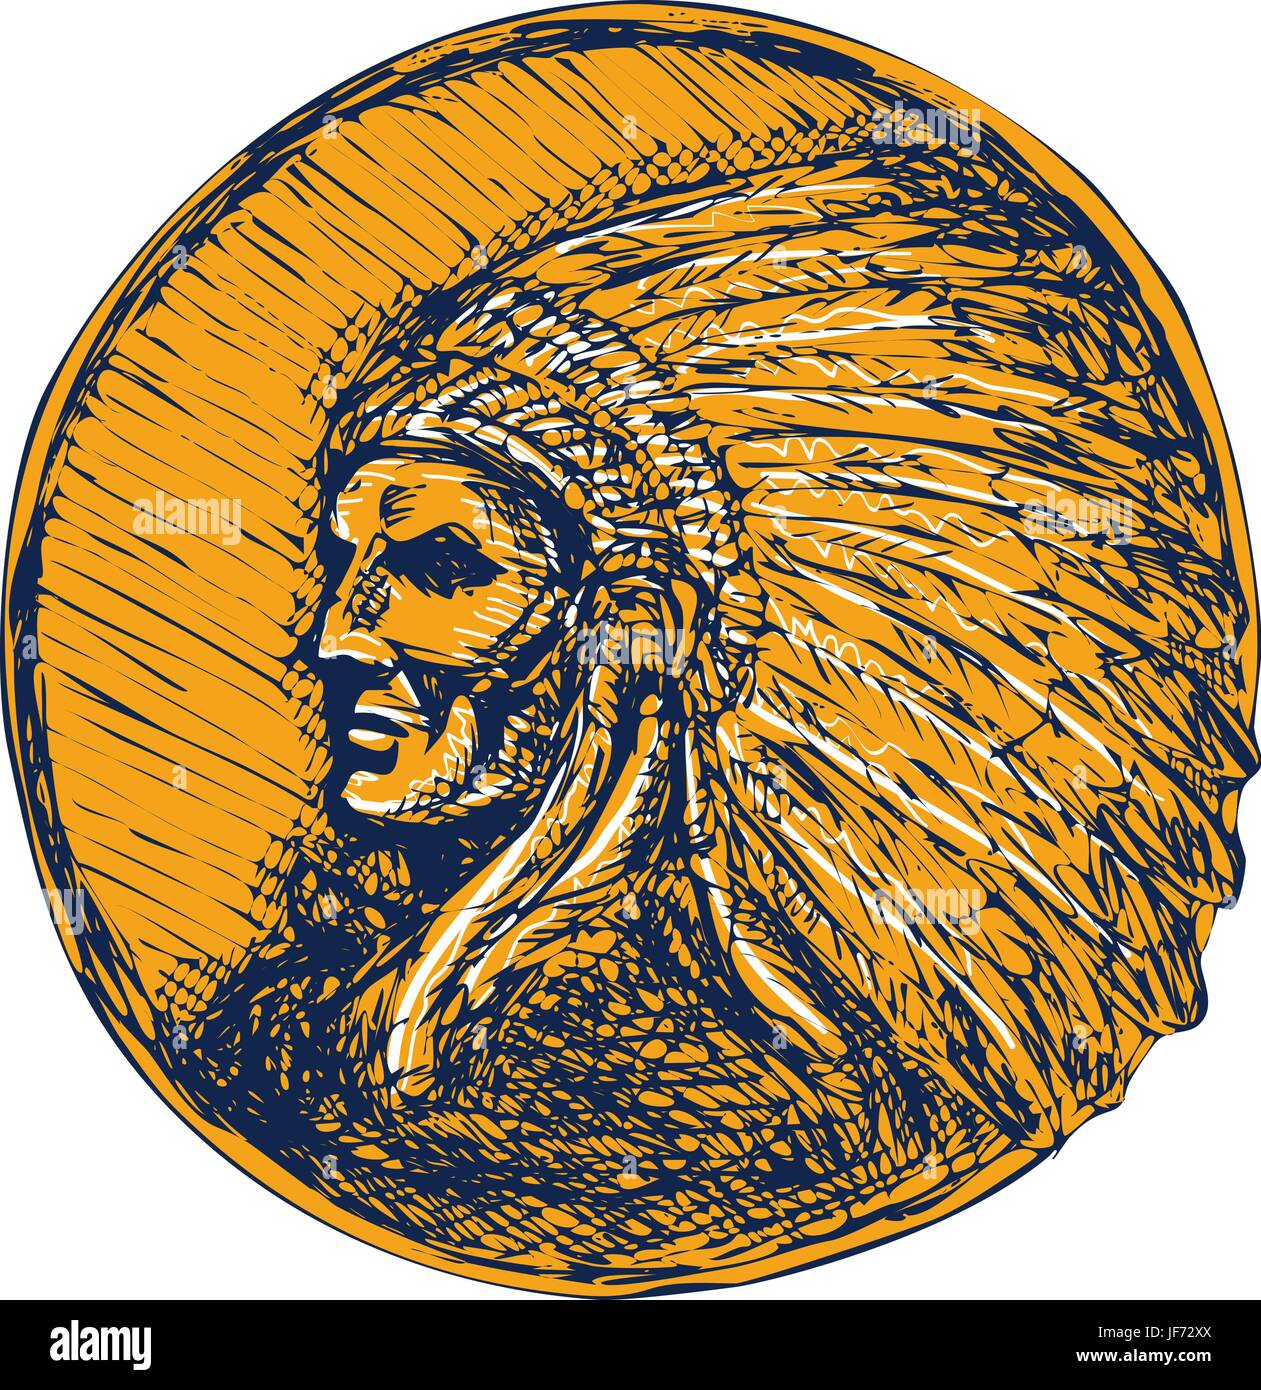 Native American Indian Chief Headdress Drawing - Stock Image